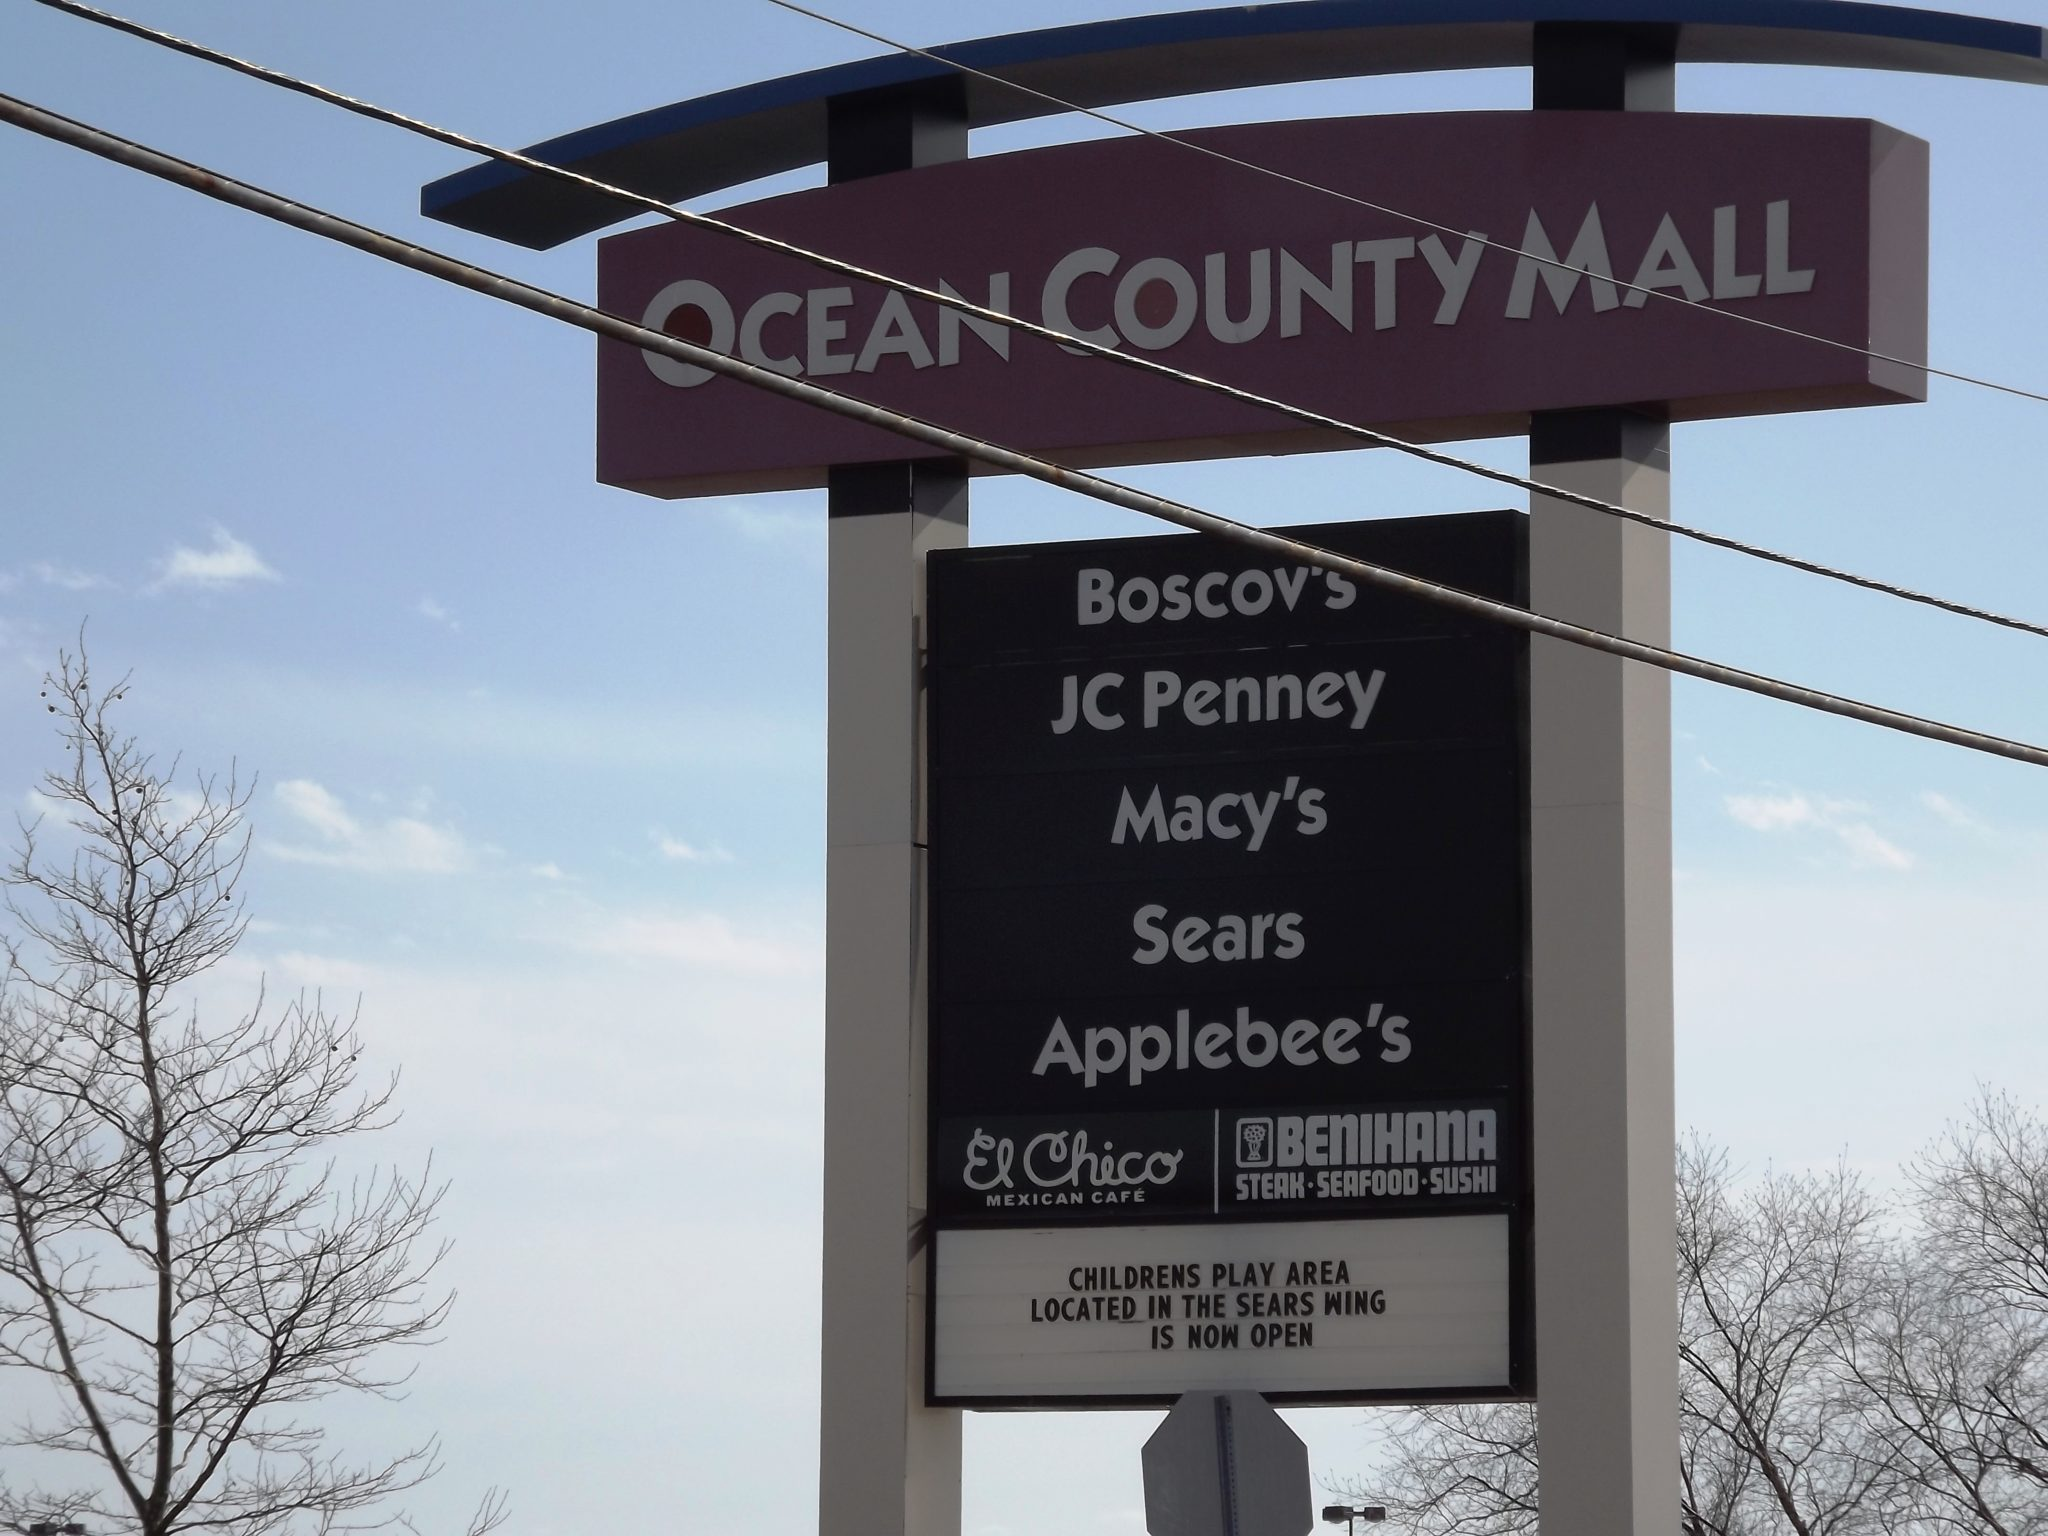 TOMS RIVER: Ocean County Mall Evacuation